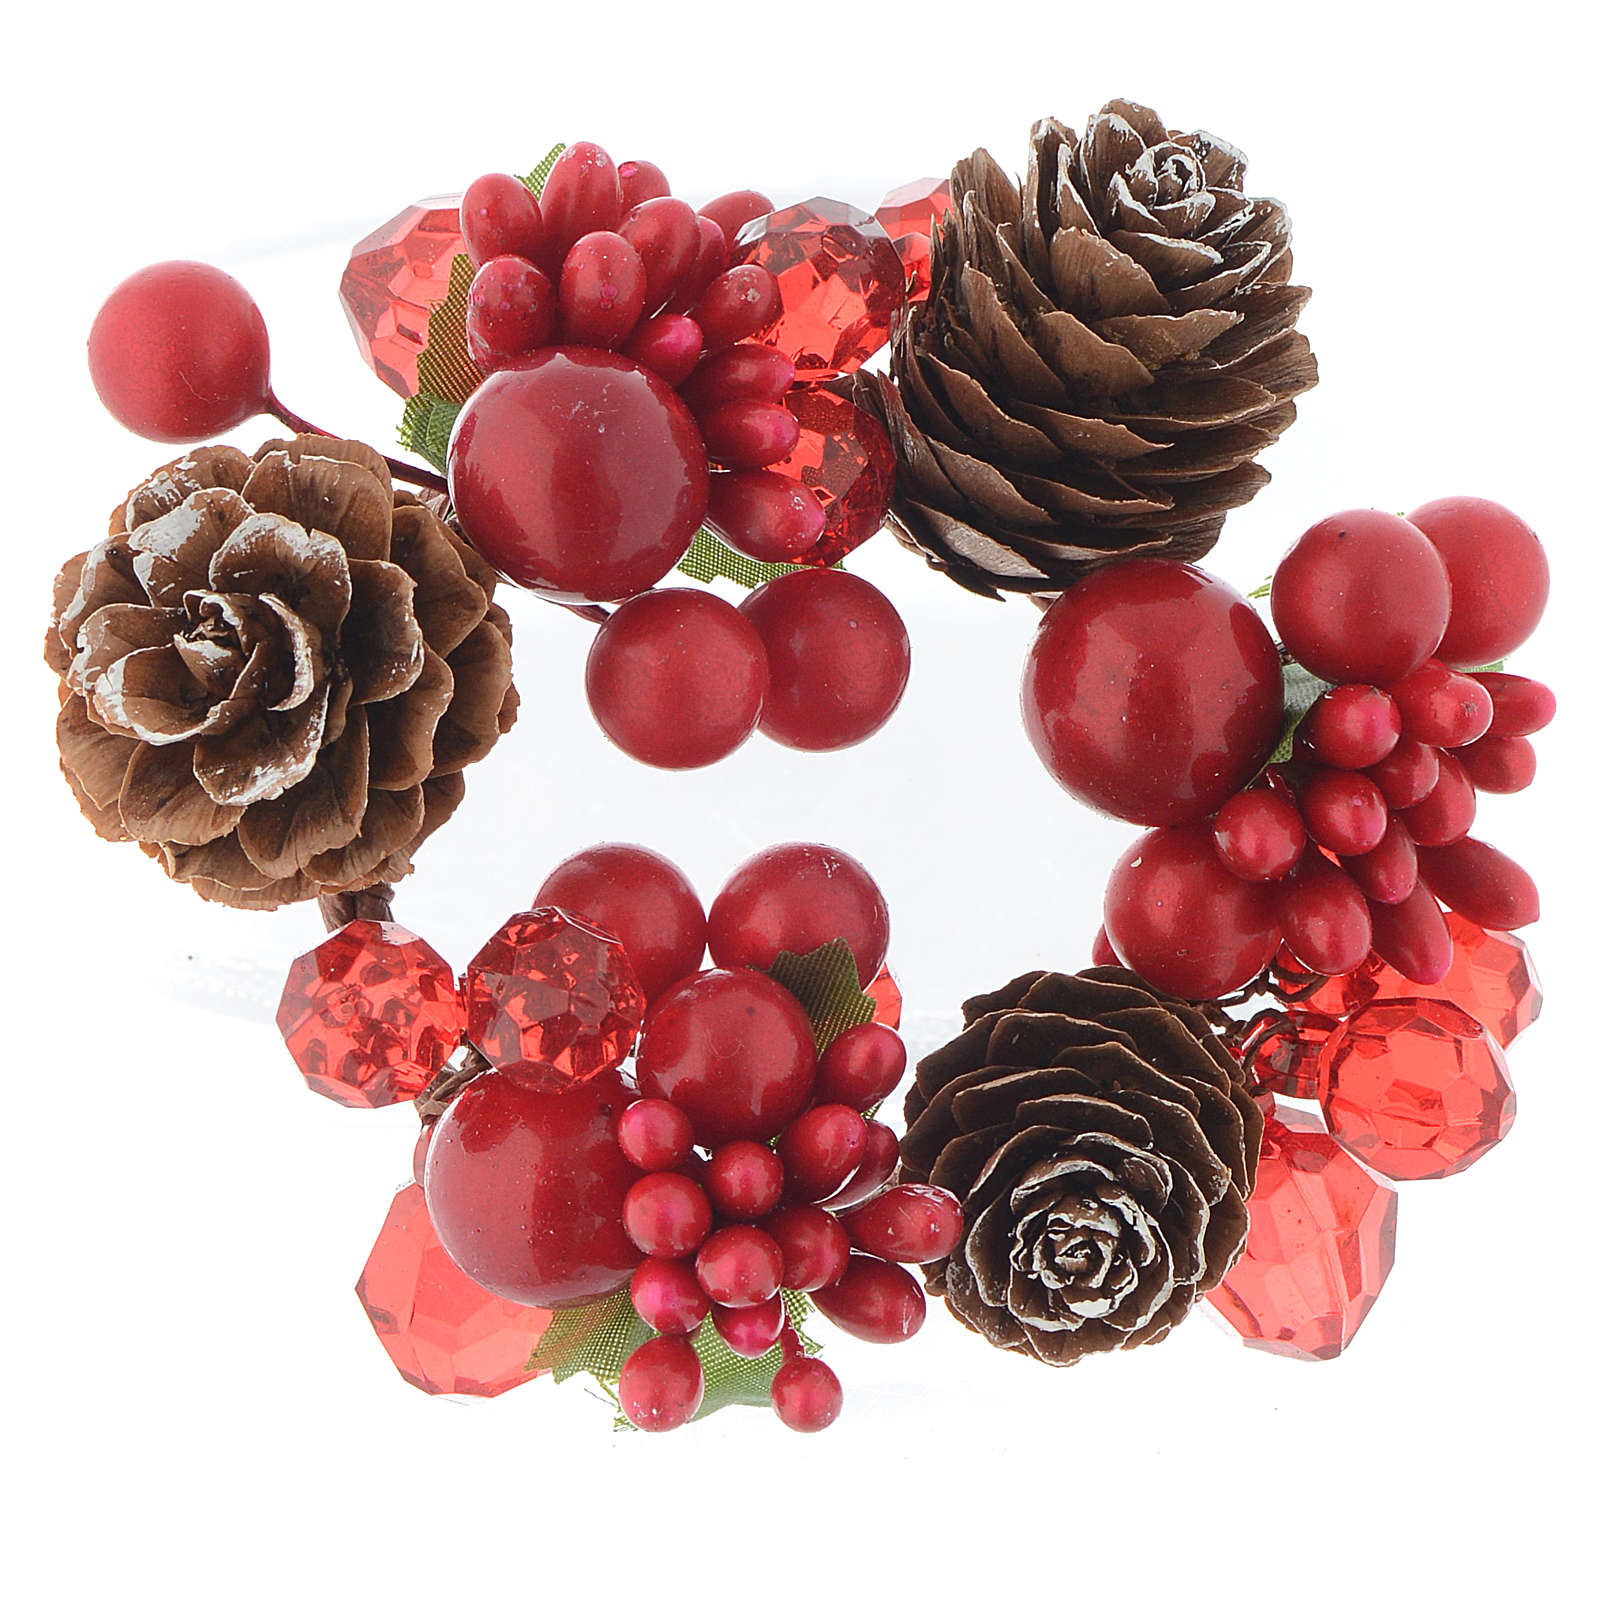 Christmas candle embellishment,red with berries and pine cones 4cm diameter 3